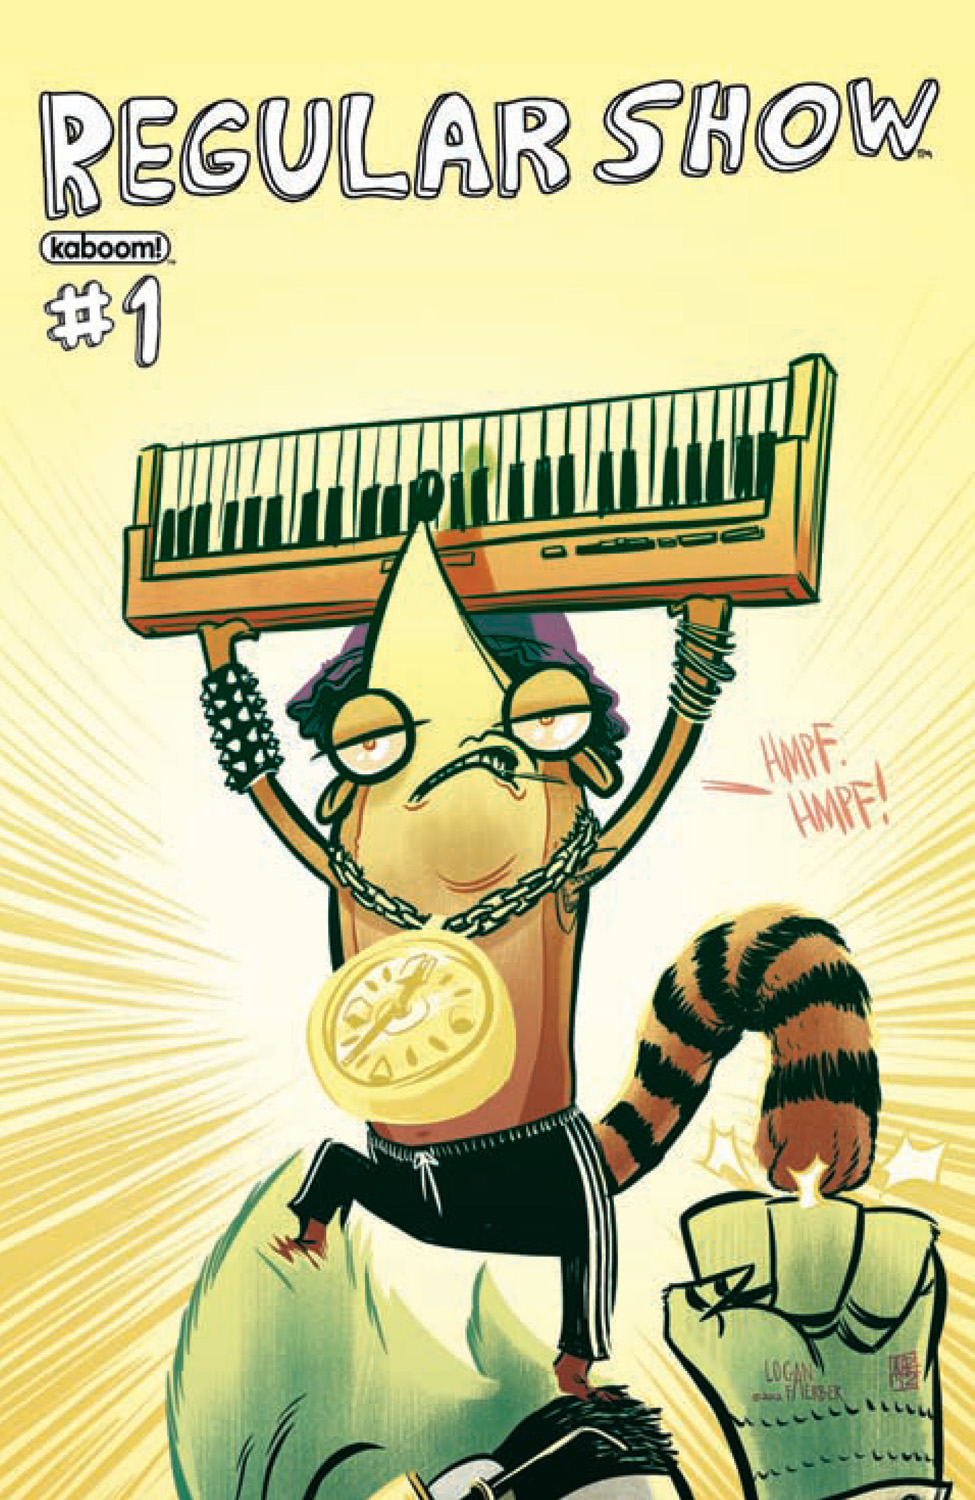 regular show  1 slams onto stands wednesday may 15